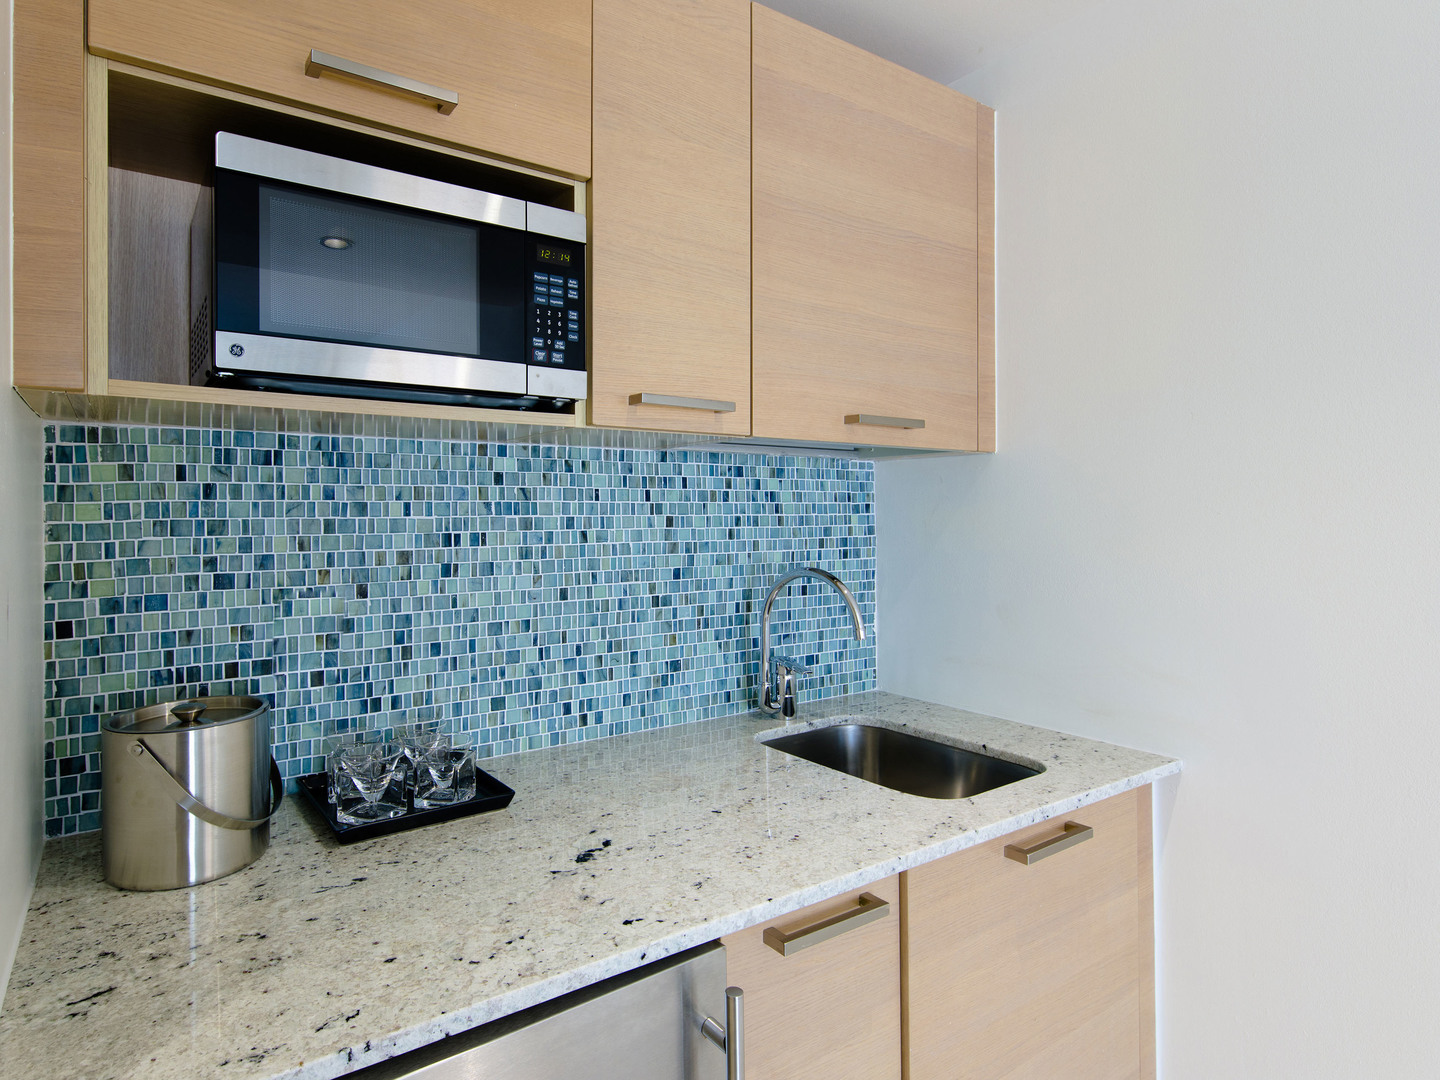 Marriott Vacation Club Pulse<span class='trademark'>®</span>, South Beach Studio Kitchen. Marriott Vacation Club Pulse<span class='trademark'>®</span>, South Beach is located in Miami Beach, Florida United States.